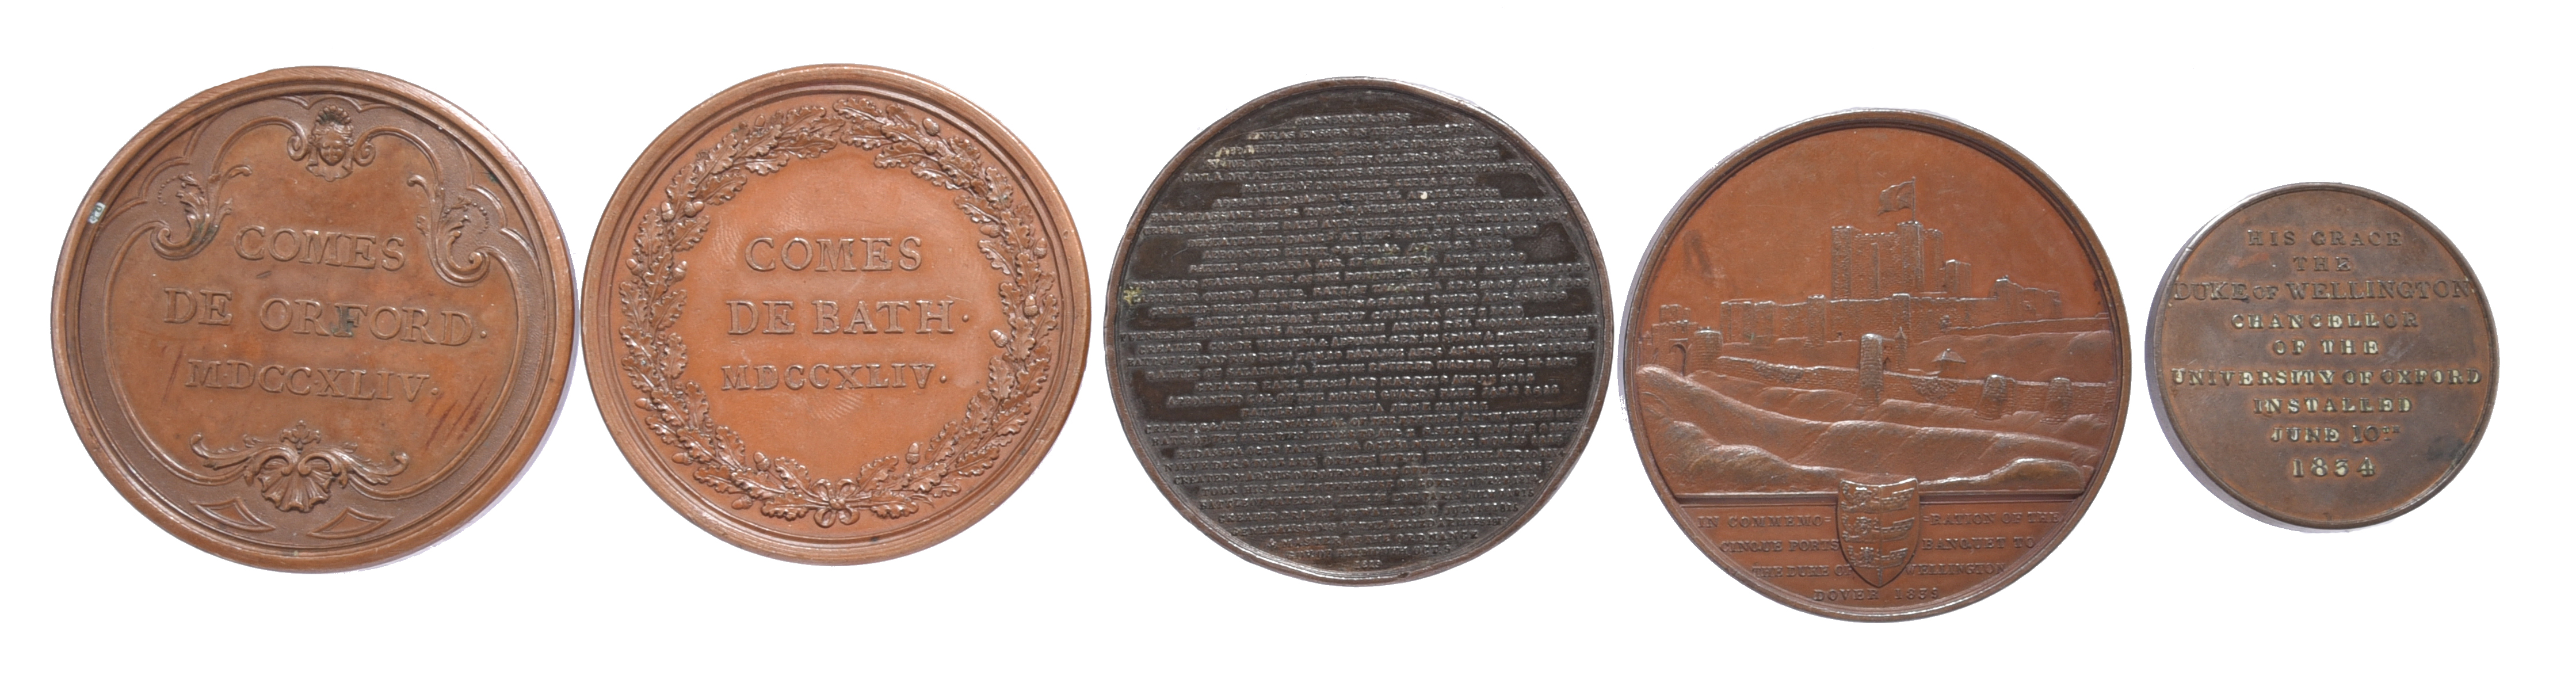 Five British historical medals: Robert Walpole 1744, AE, 55mm, bust left, rev. 'COMES DE ORFORD' - Image 2 of 2